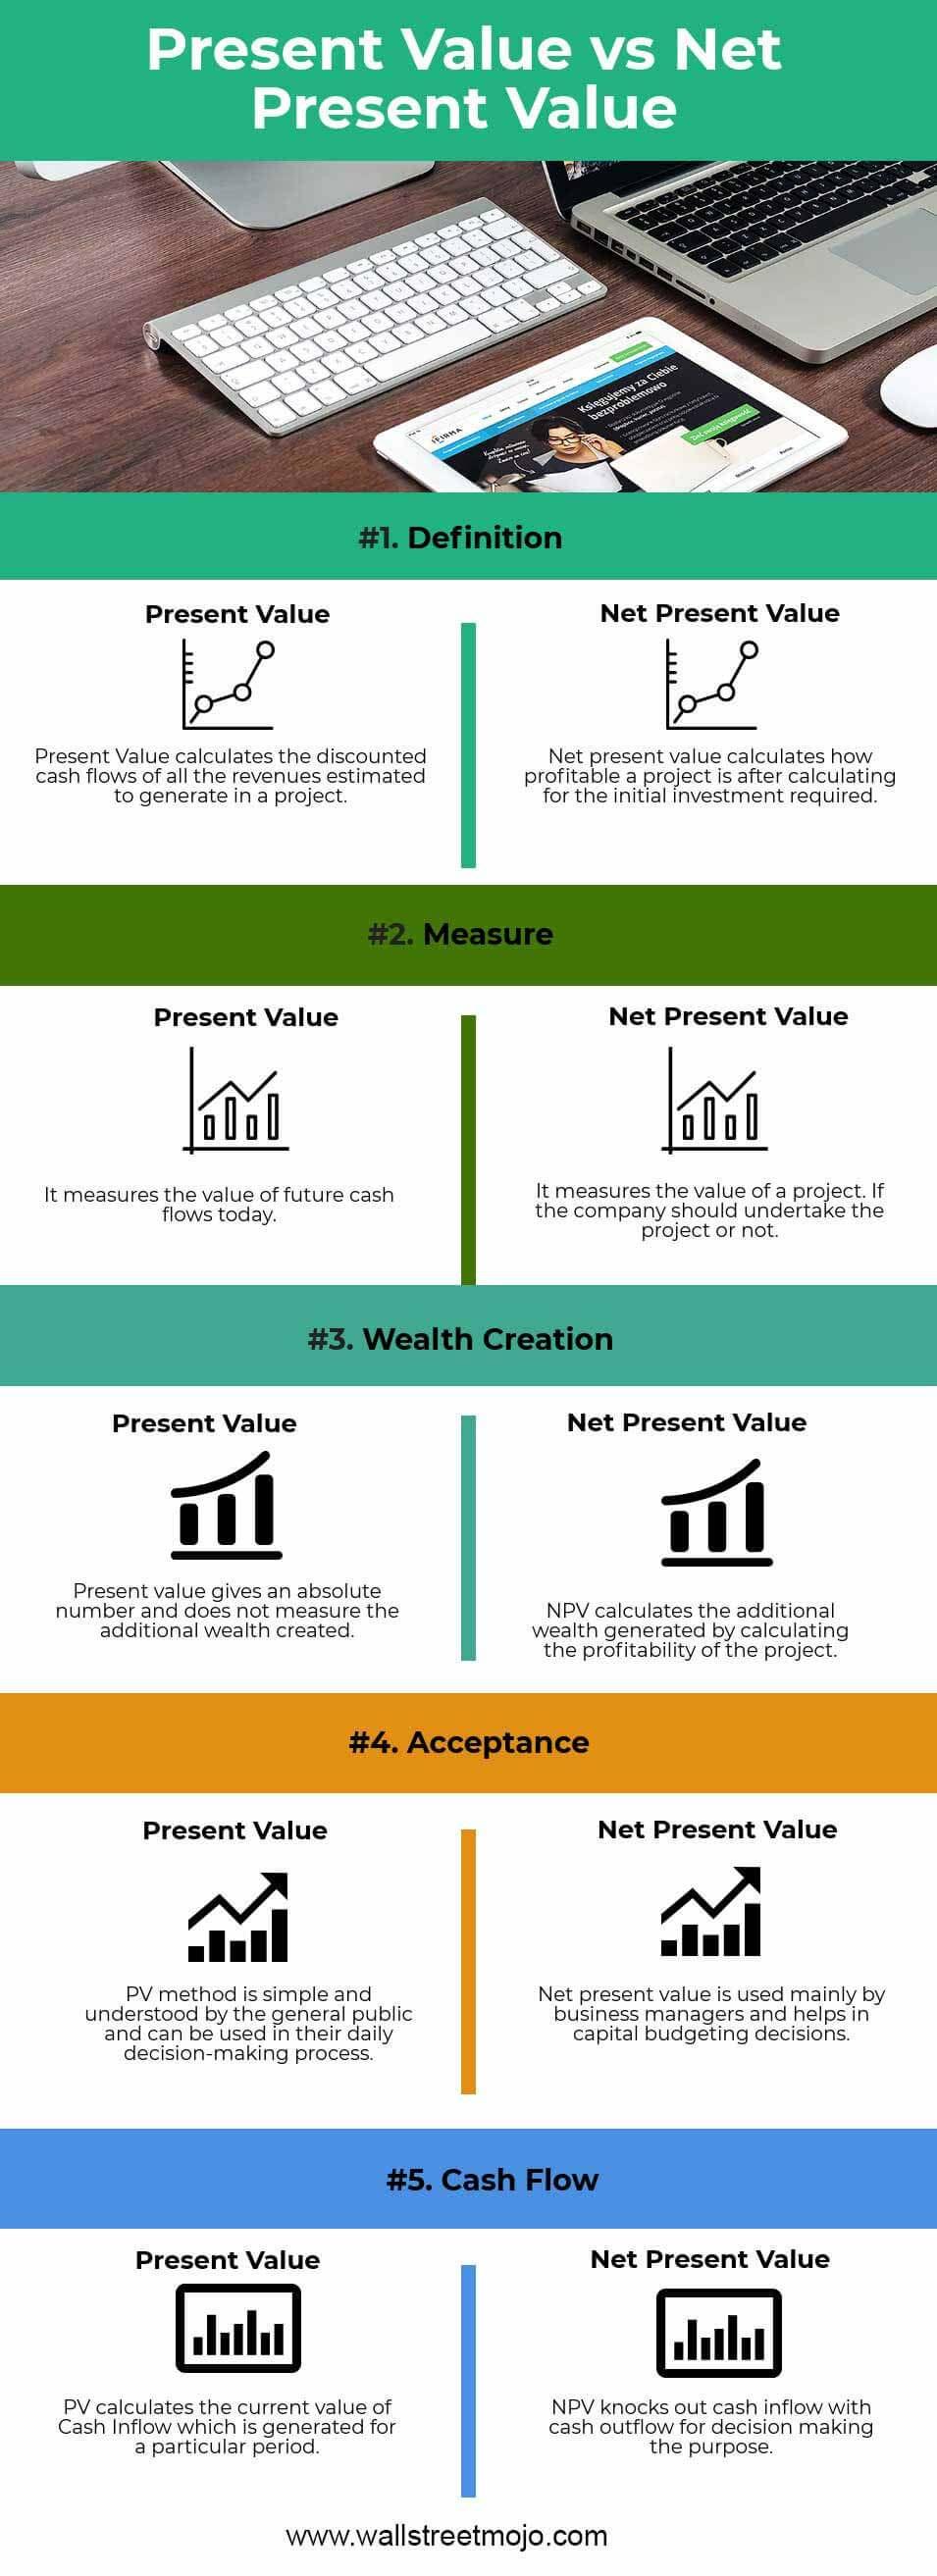 Present-Value-vs-Net-Present-Value